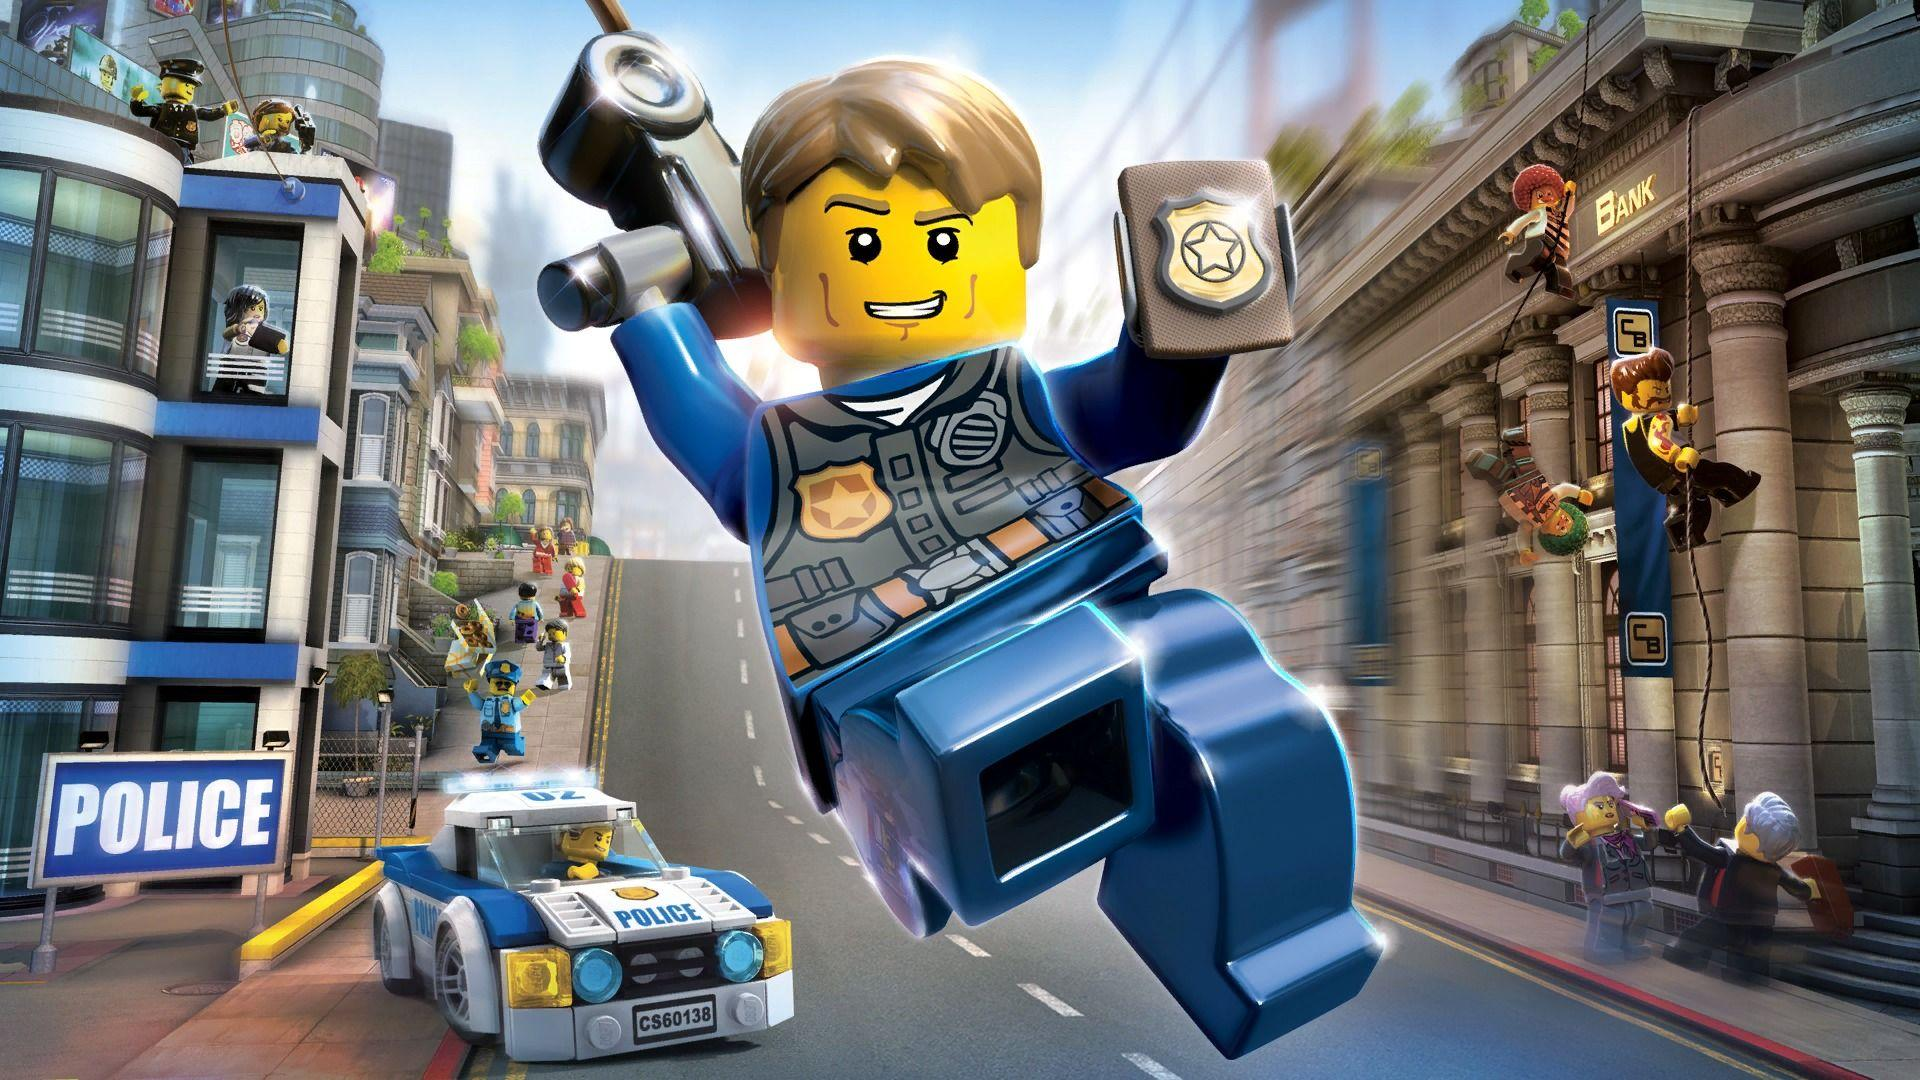 Lego City 1. Lego Group Bundles 7 Mini Games In One Fun Package ...